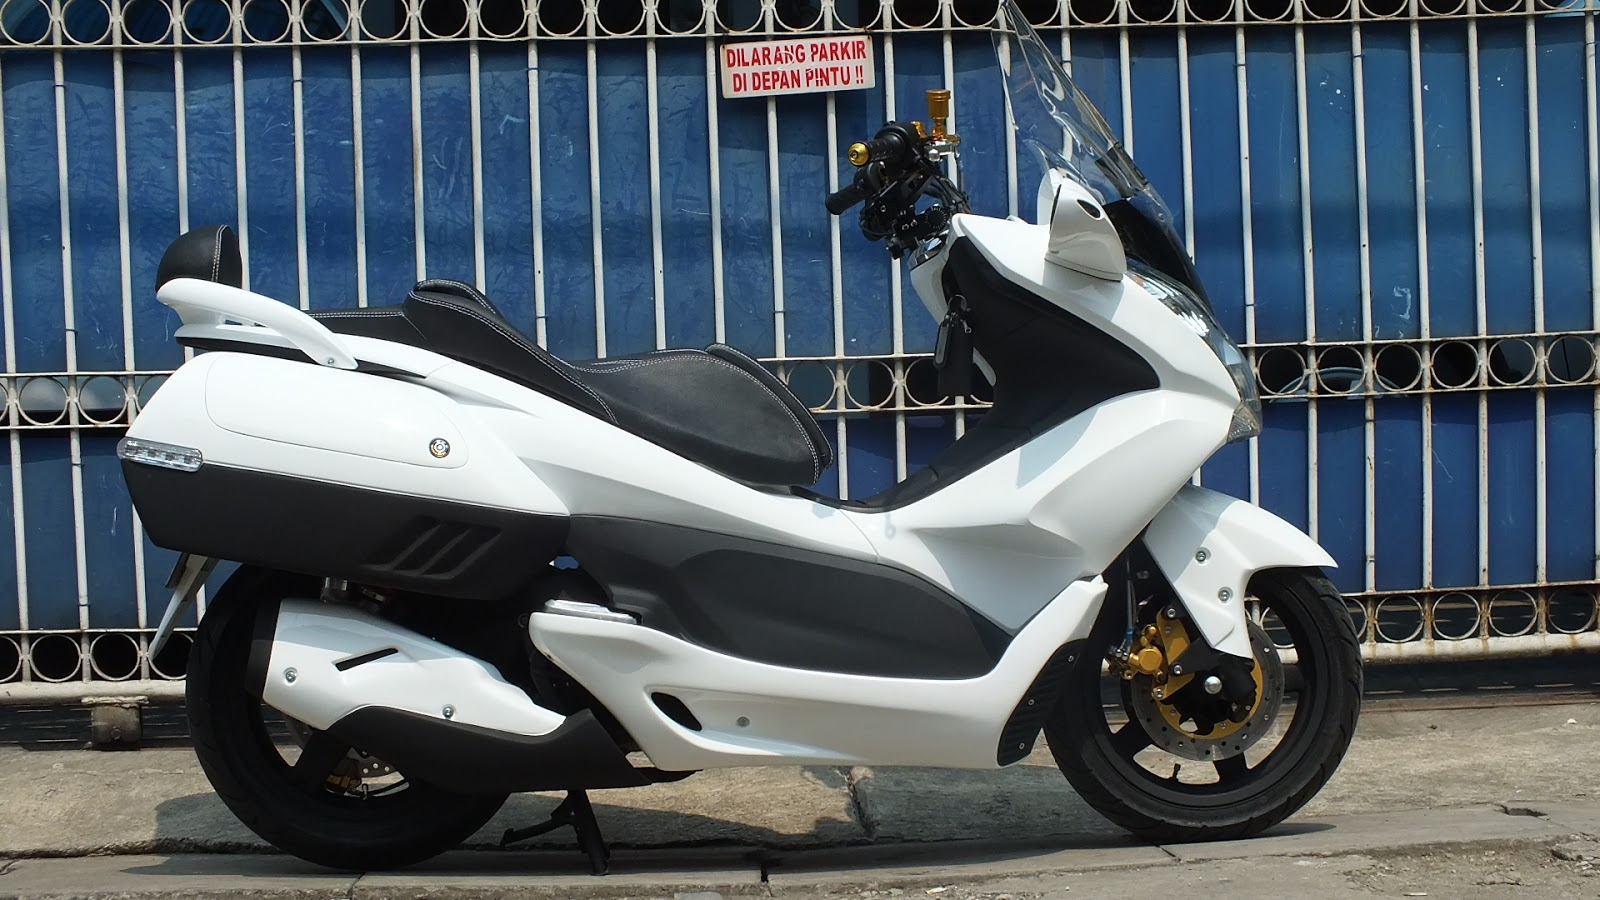 Modifikasi JOK MOTOR JOK HONDA PCX Model SOFA GARIS Pesanan Mr